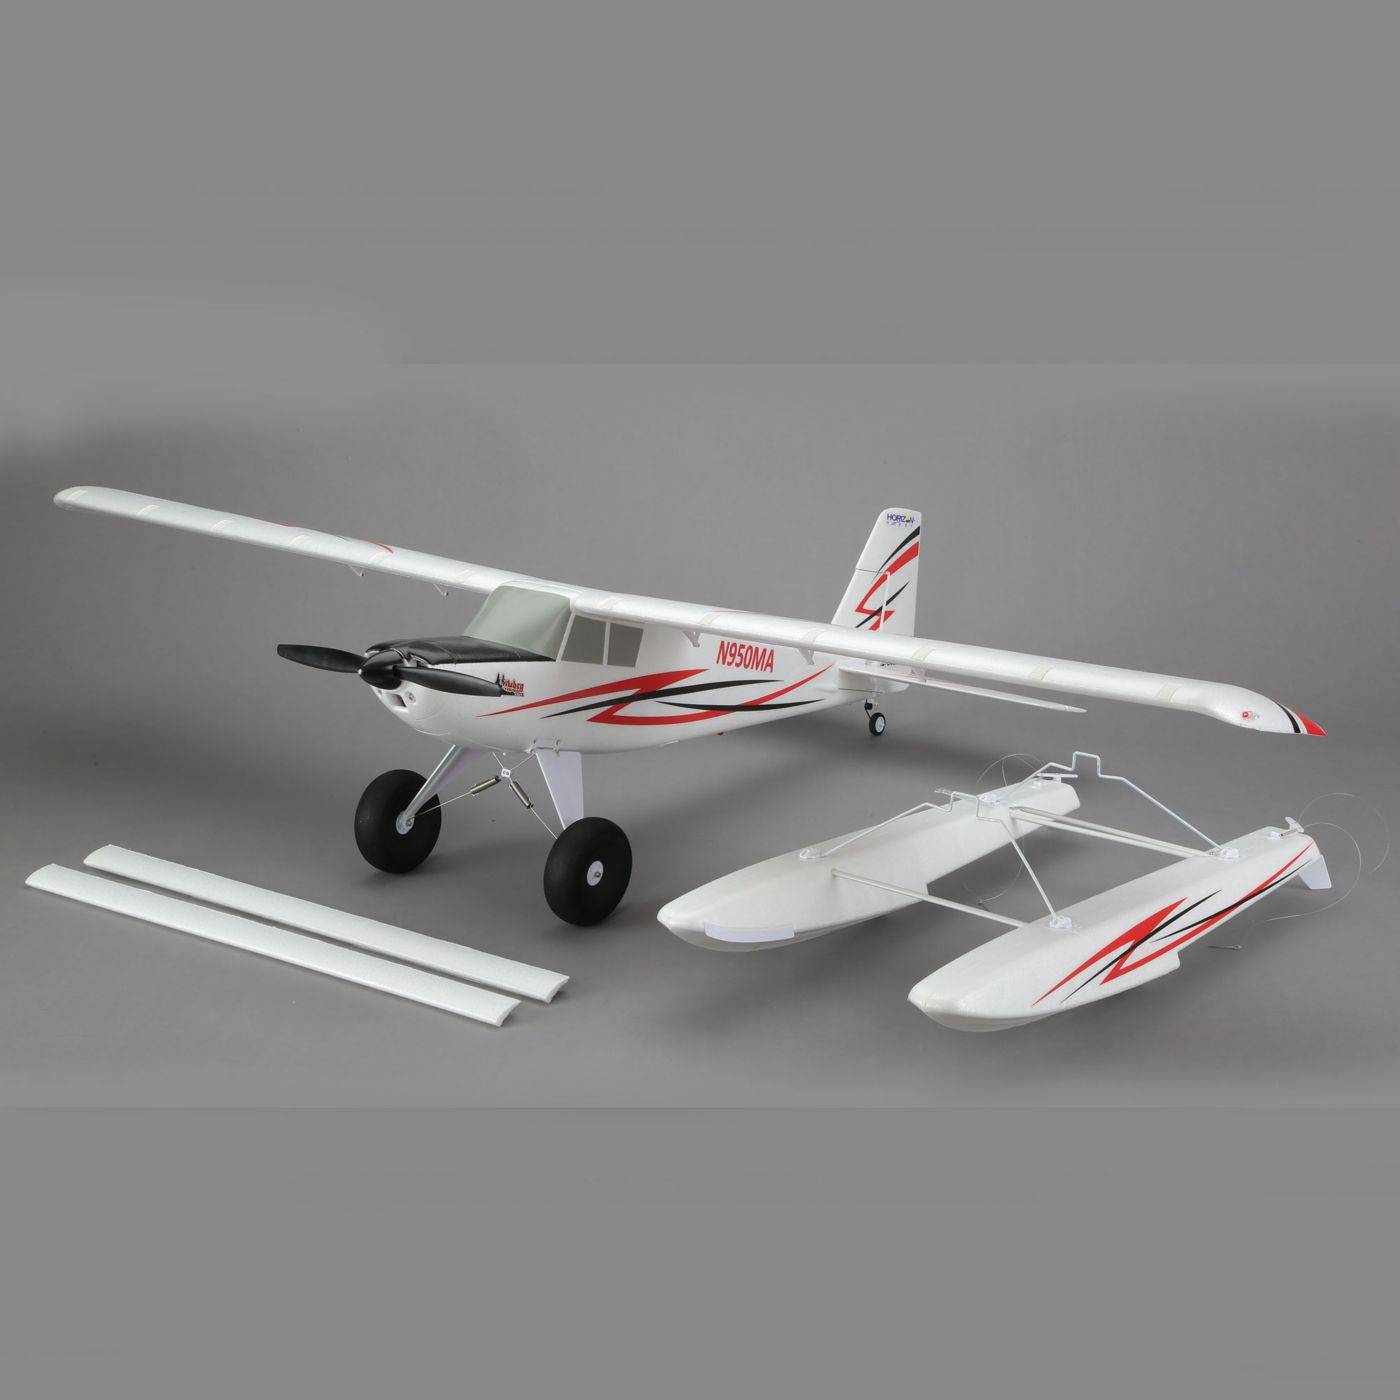 rc float planes with Flite Timber Bnf Basic With Floats P 28493 on Float flying basics further Search as well Cessna 206 likewise Electric  hibious Lazair besides Floats.